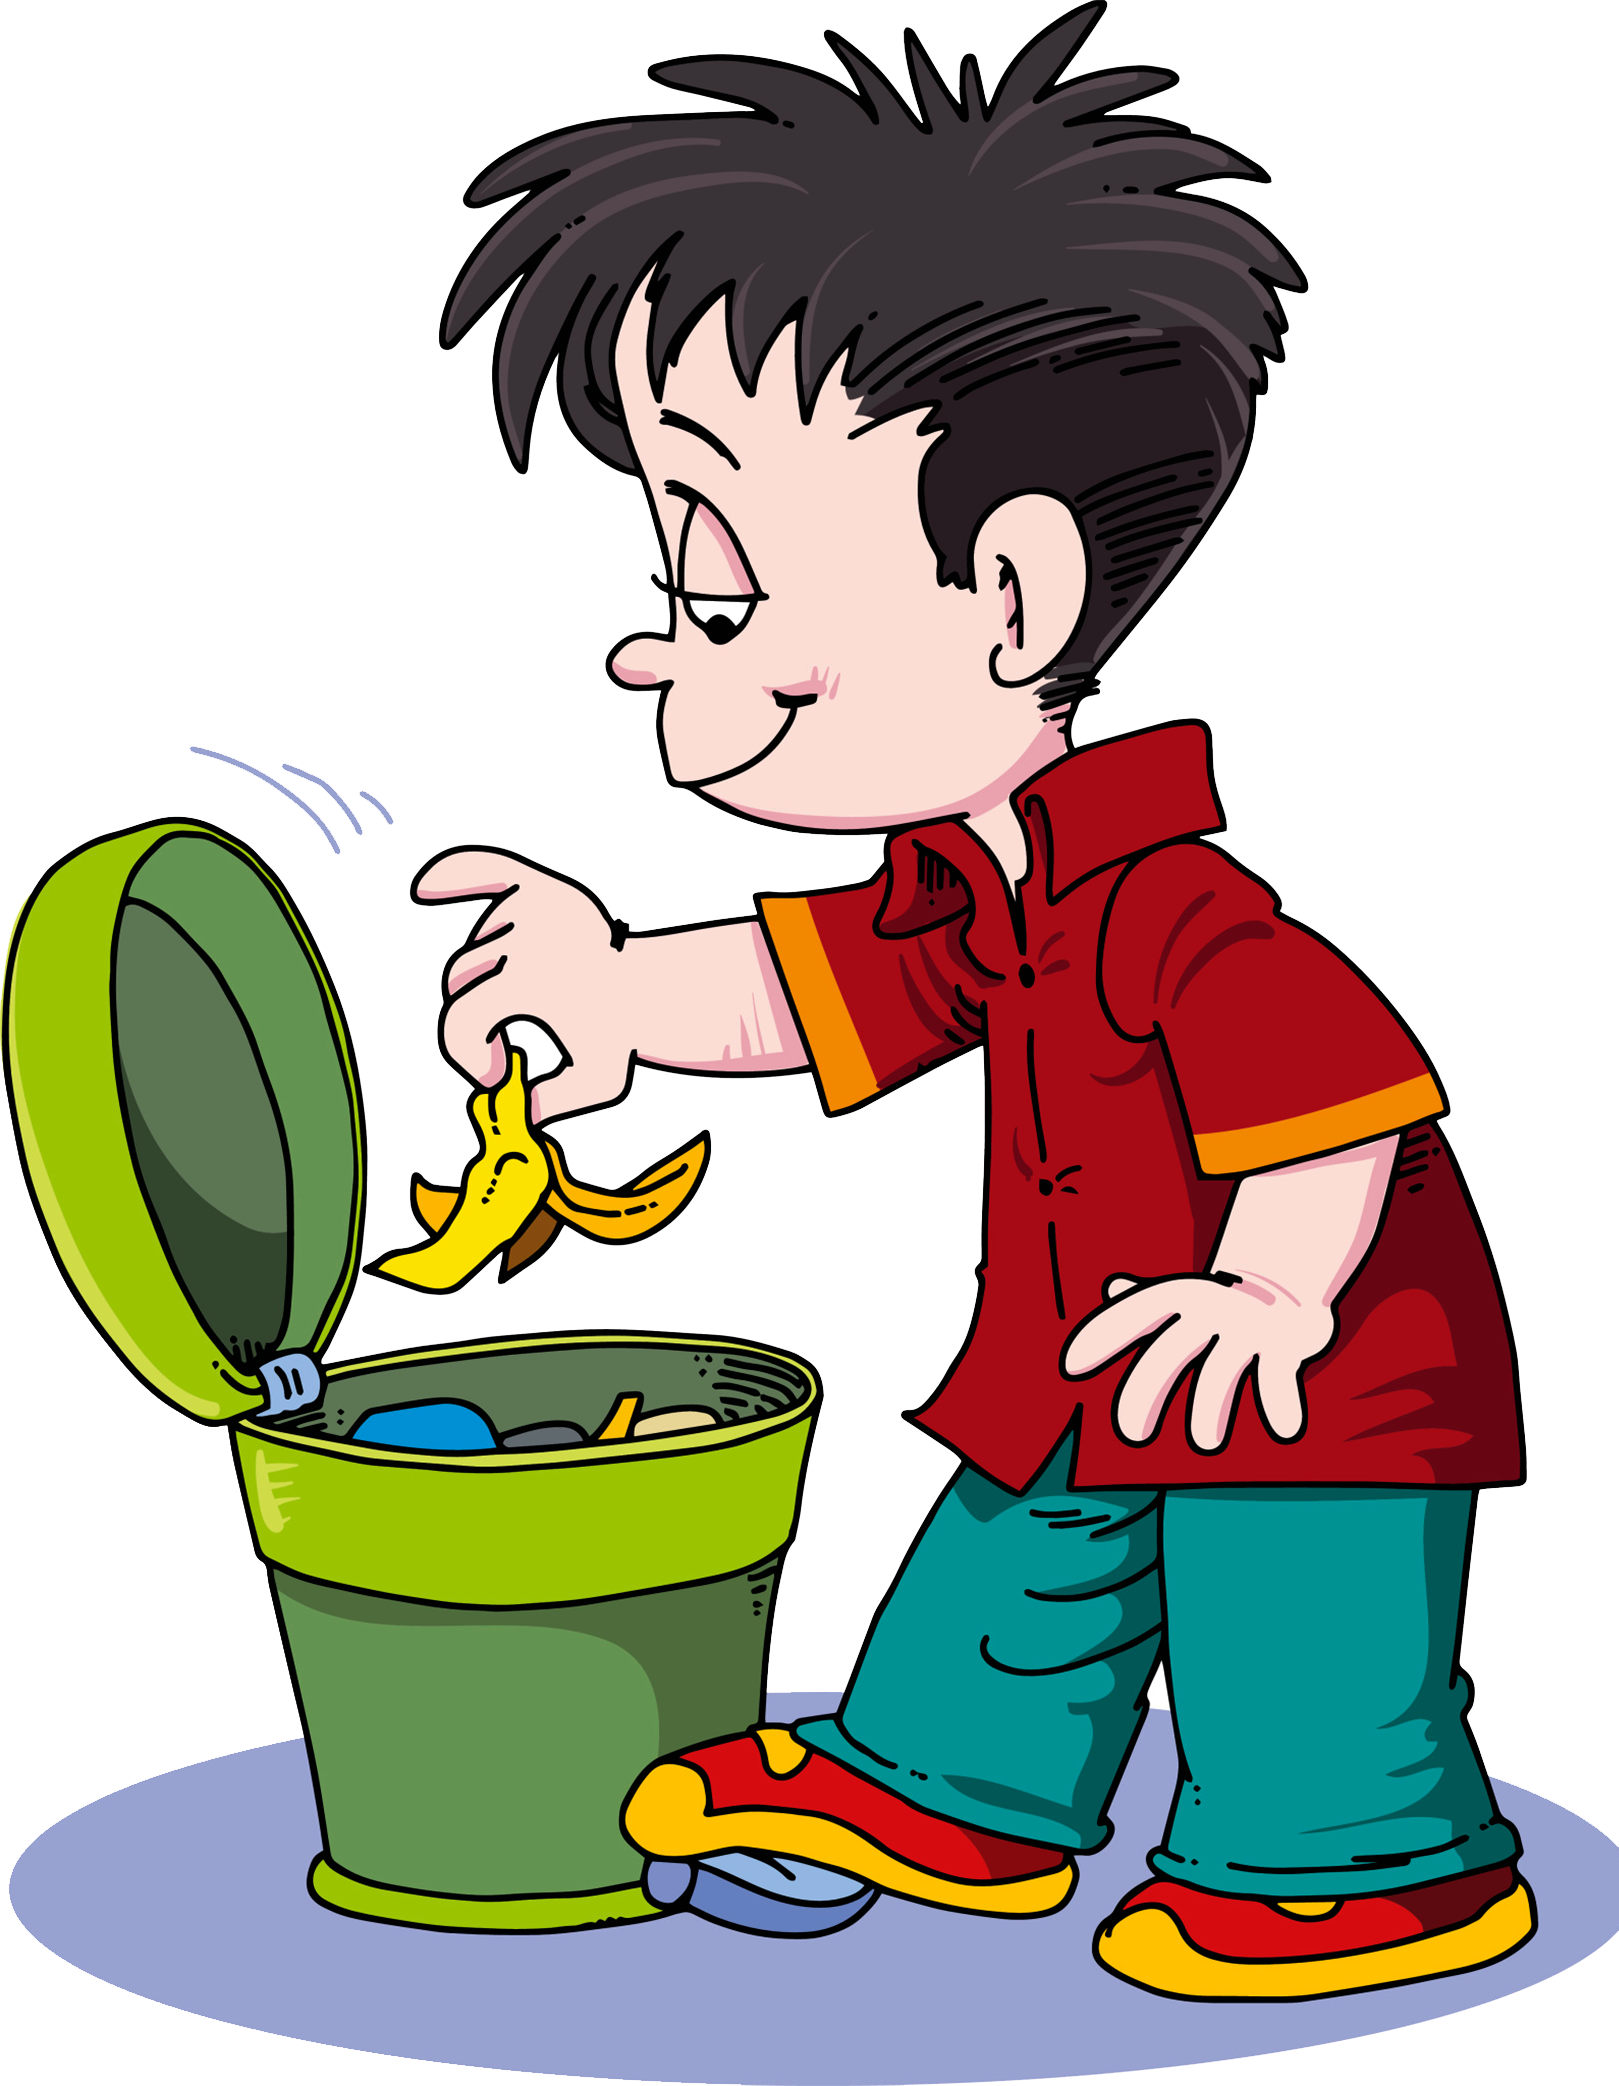 Apple in the trash clipart png royalty free download Waste container Clip art - Rubbish thrown into the trash 1619*2086 ... png royalty free download